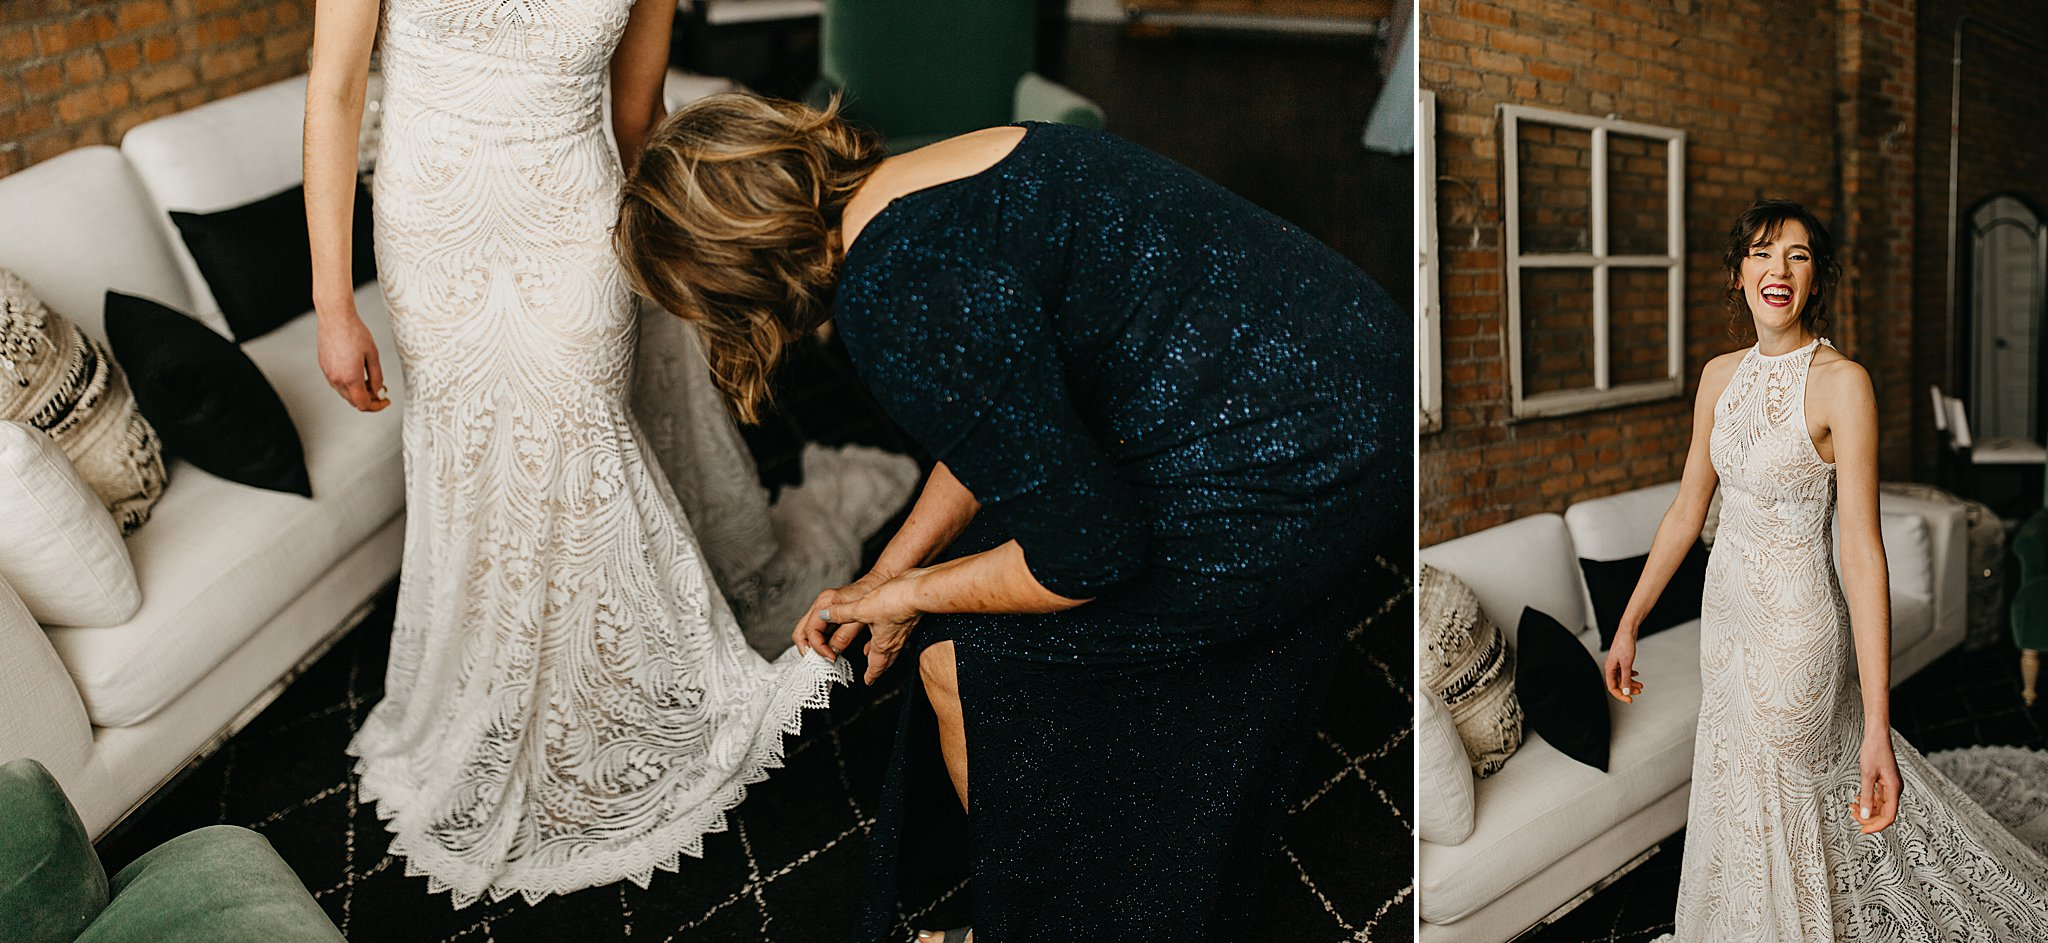 Wilderlove Co_Wedding Photographer_Industrial Wedding_Jewish Wedding_Dallas Texas Wedding_Brake & Clutch Warehouse_North Texas Photographer_0007.jpg